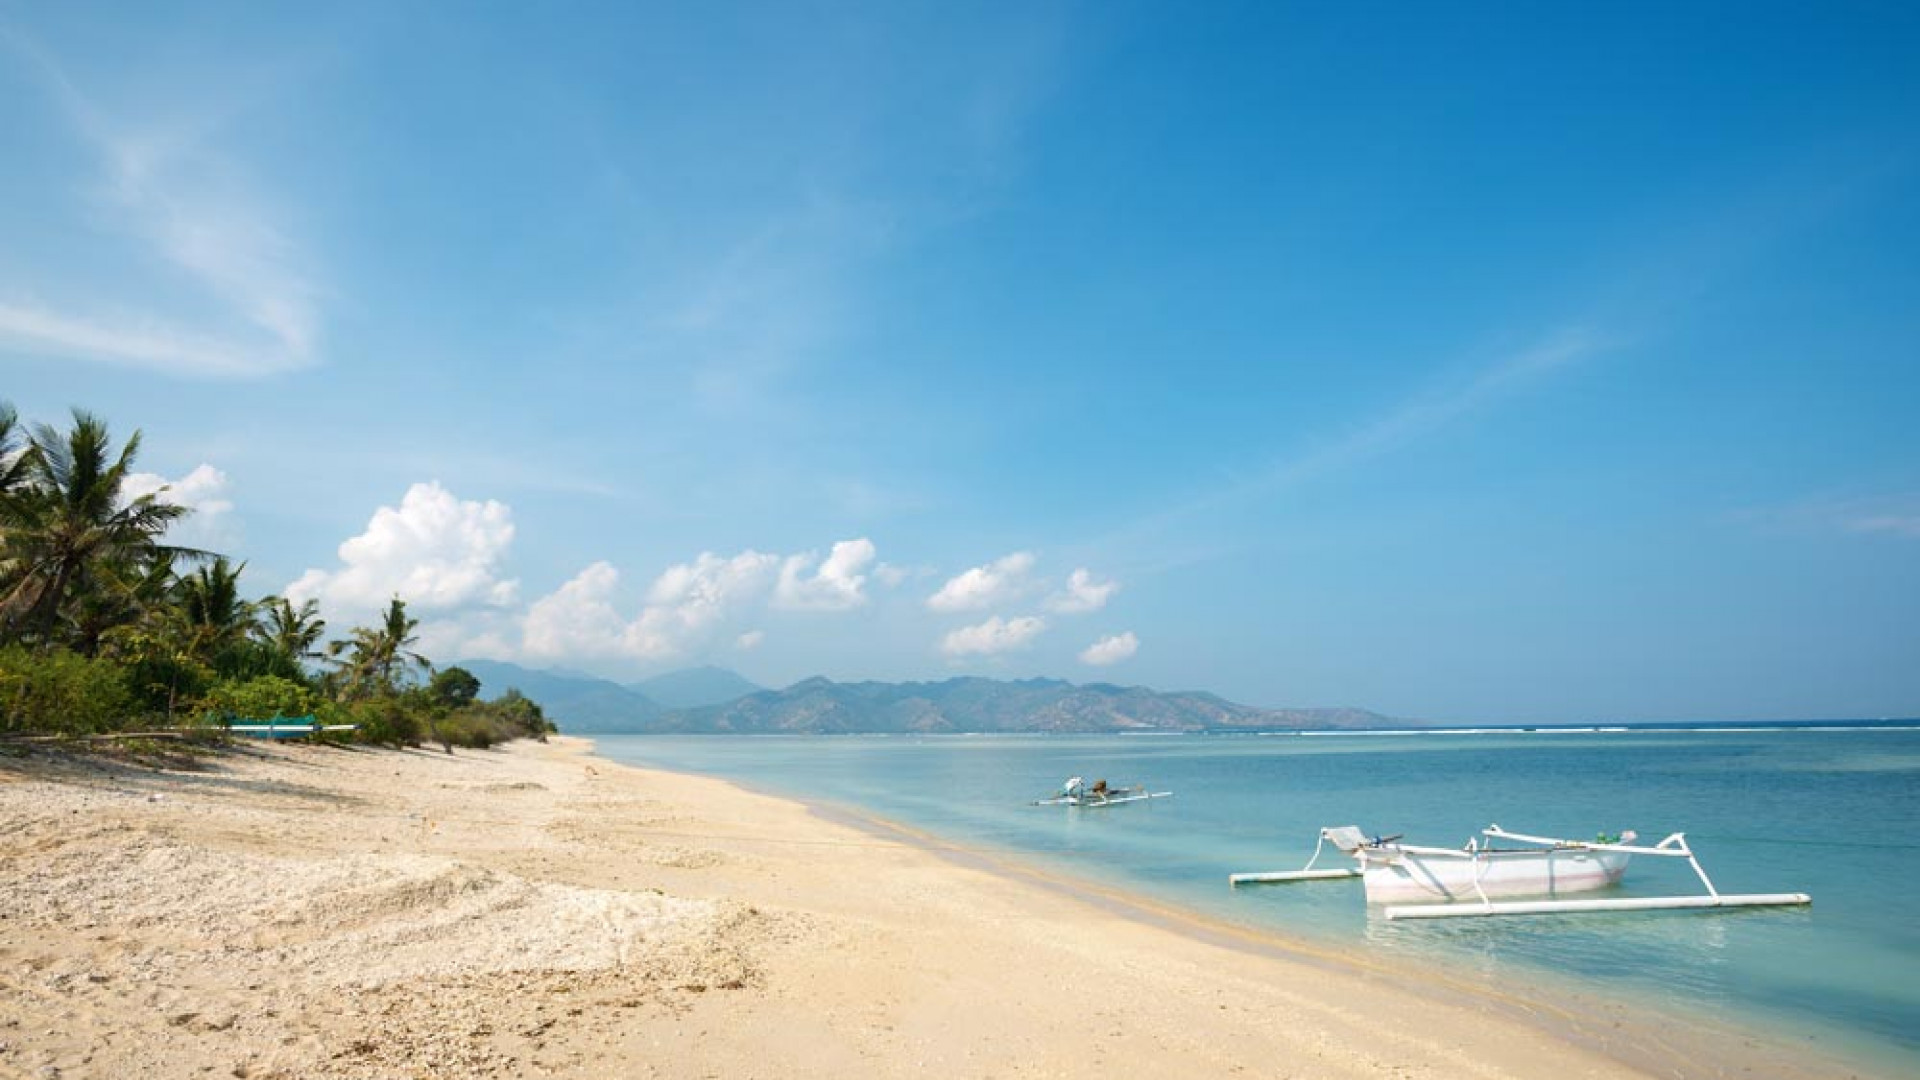 G Adventures' new Gili sailing adventure